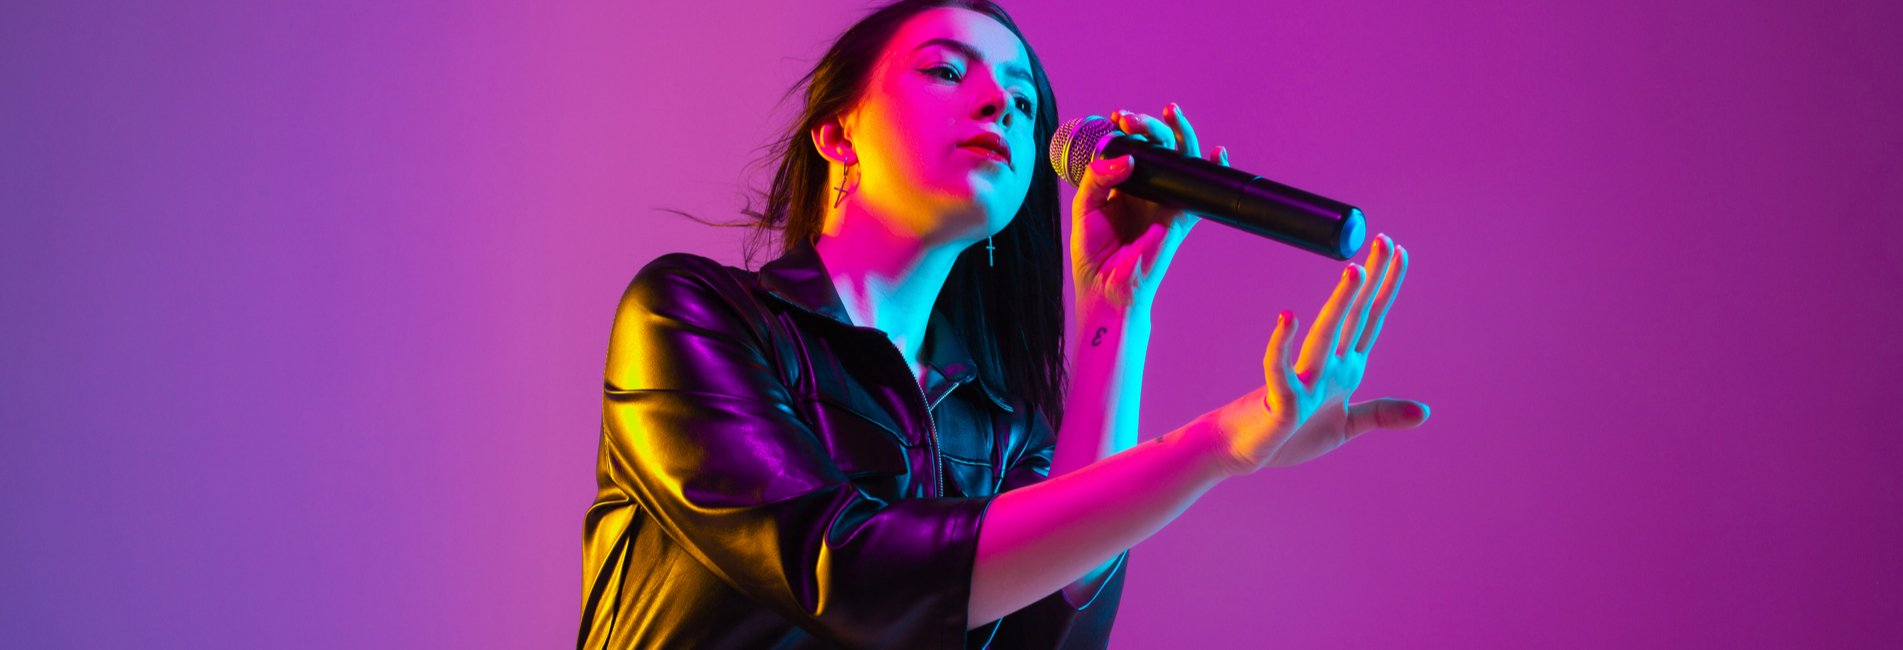 Billboard's 100 Alcohol Lyrics in Music Resurgence - A young woman is singing into a microphone to symbolize the Billboard's Top 100 and the number of songs that contain alcohol lyrics in music.